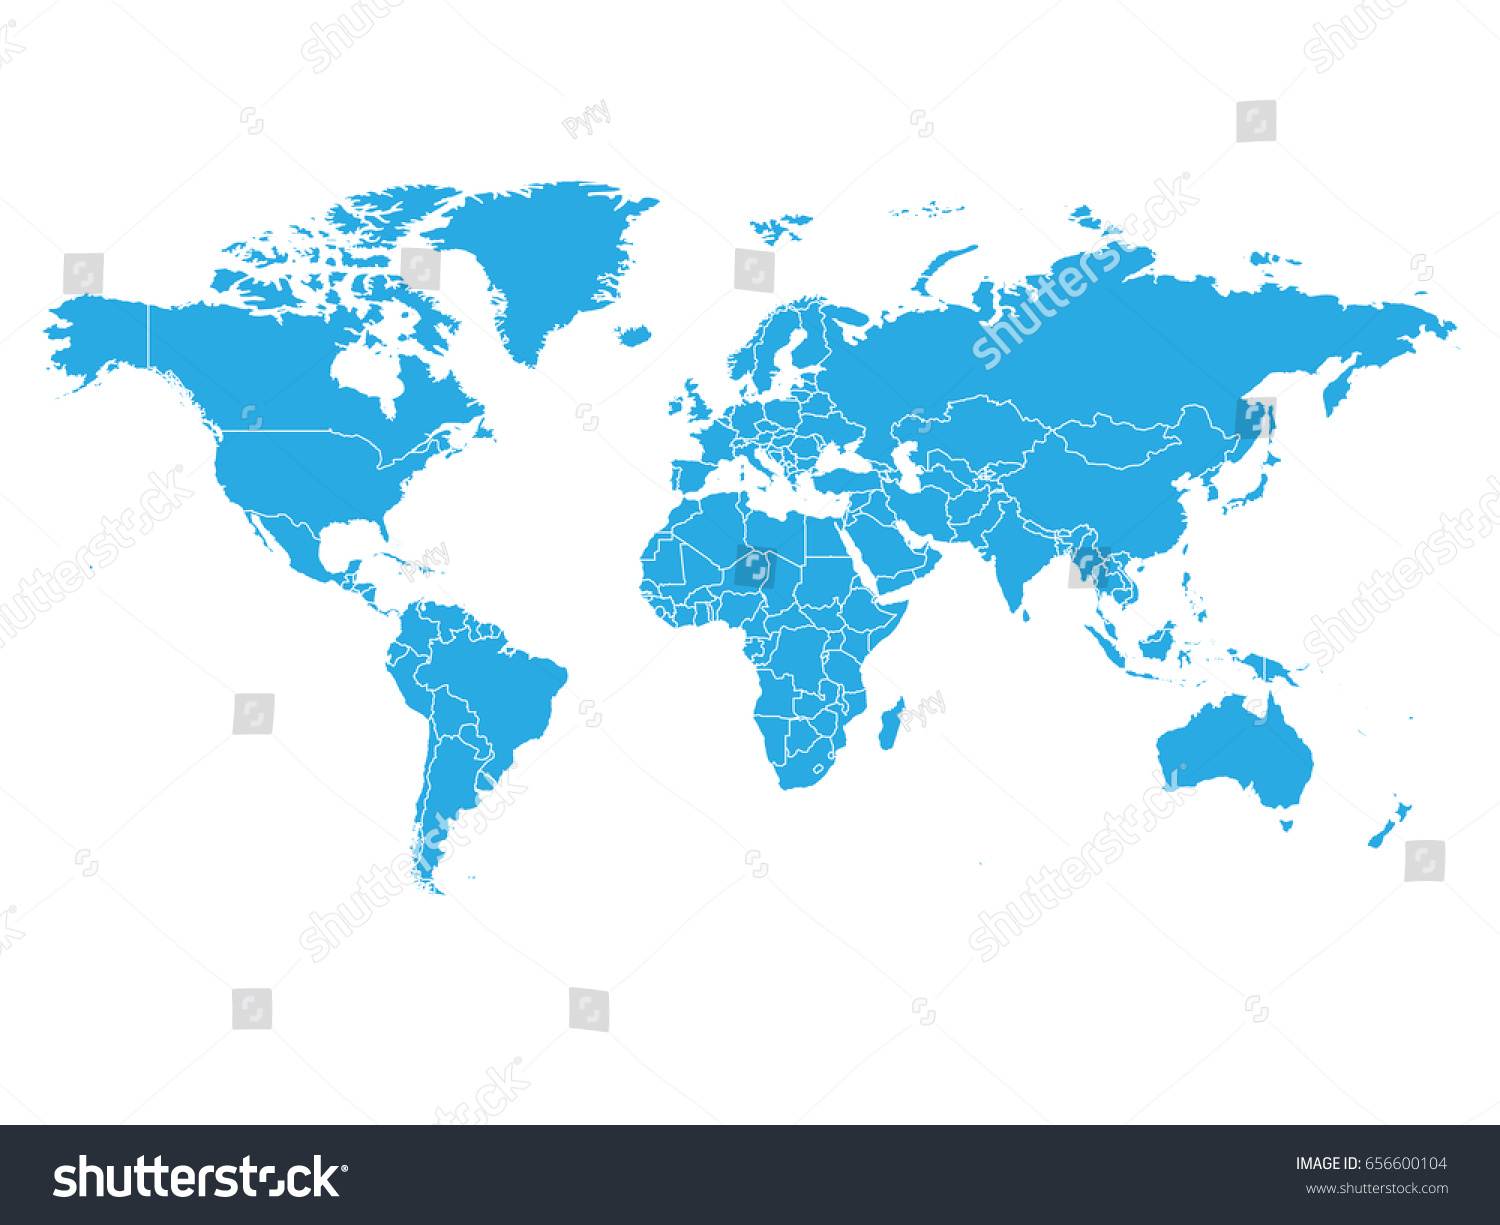 Blank Color World Map.World Map Blue Color On White Stock Vector Royalty Free 656600104